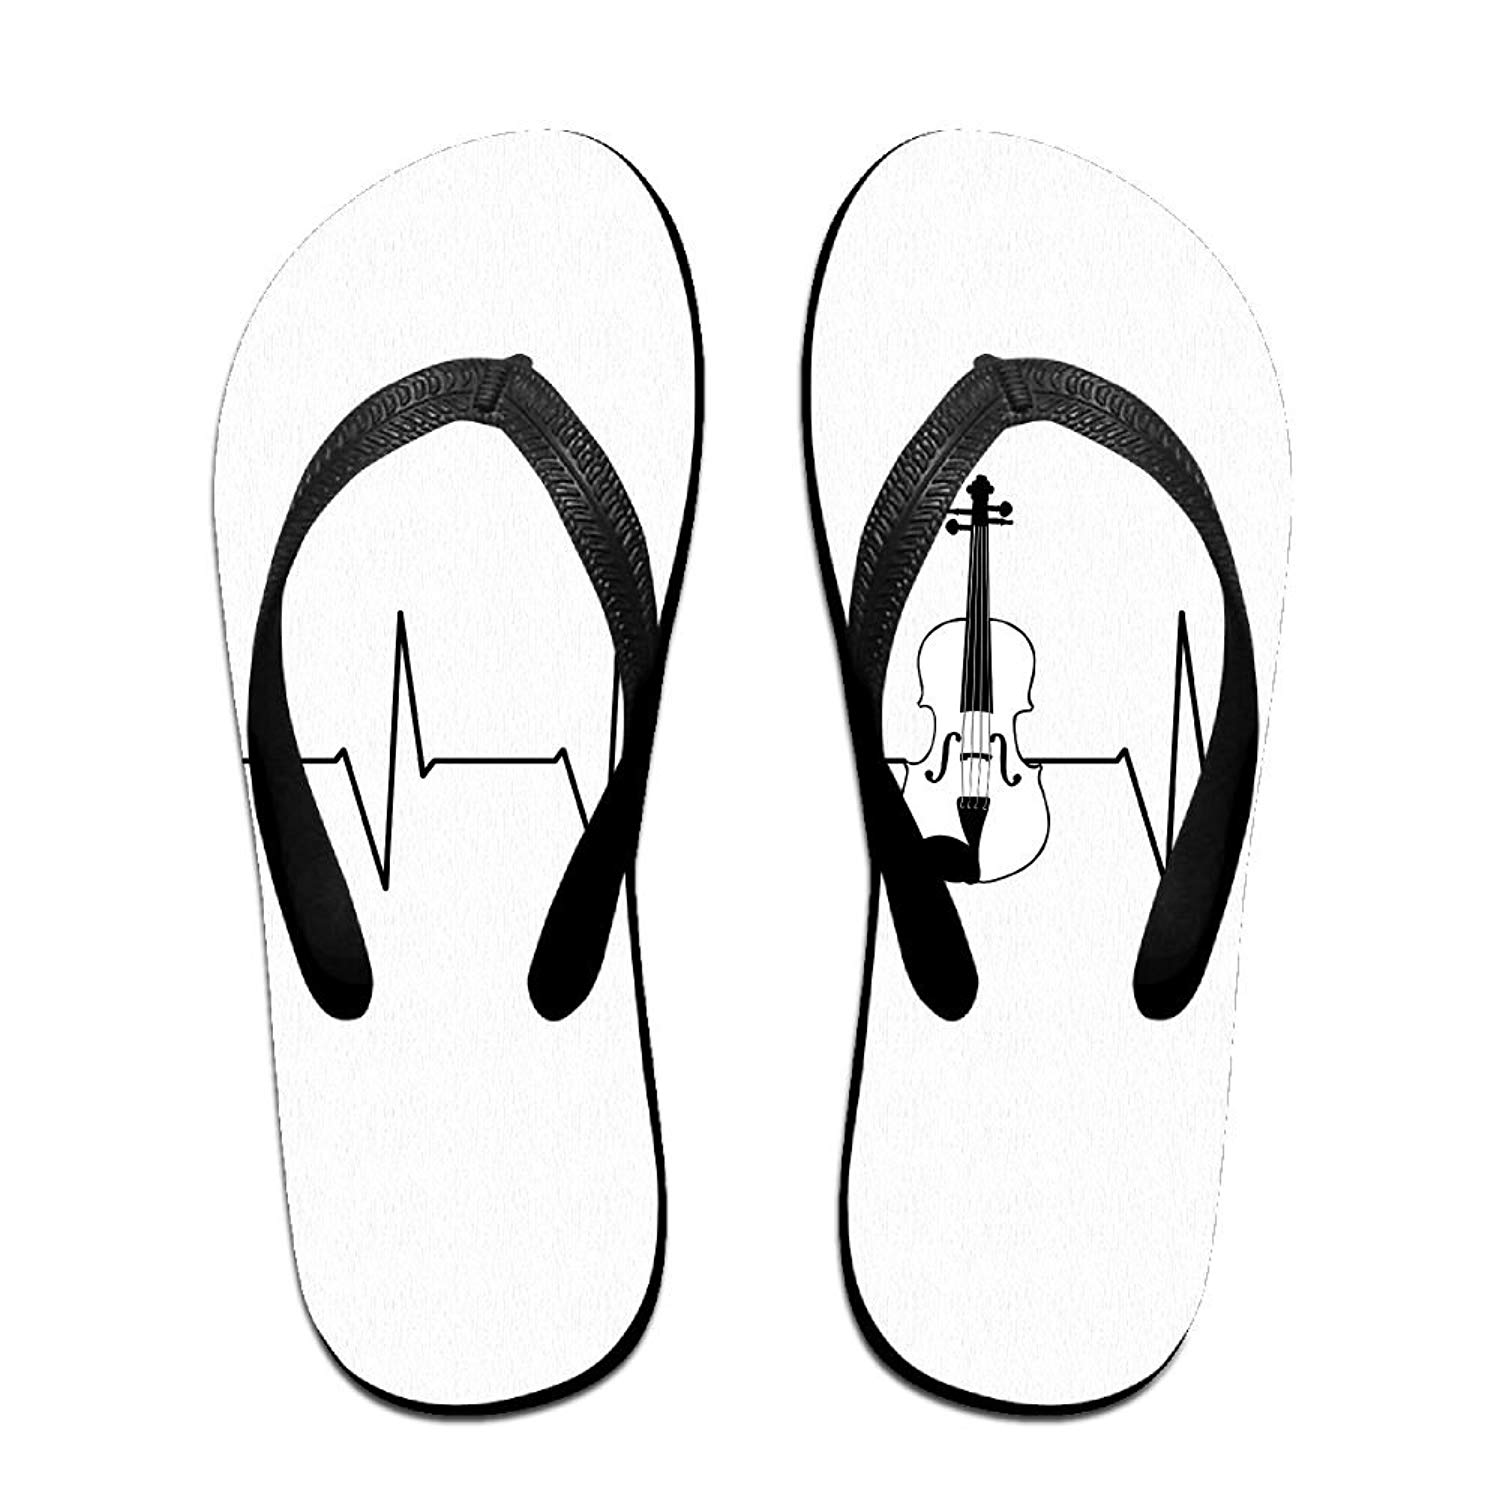 Heartbeat Flip Flops Discount Sale A6748 8ca04 Monitor Circuit With Led And Photocell Youspice Get Quotations Tailing Violin Unisex Trendy Print Slippers Beach Sandal Best Shoes